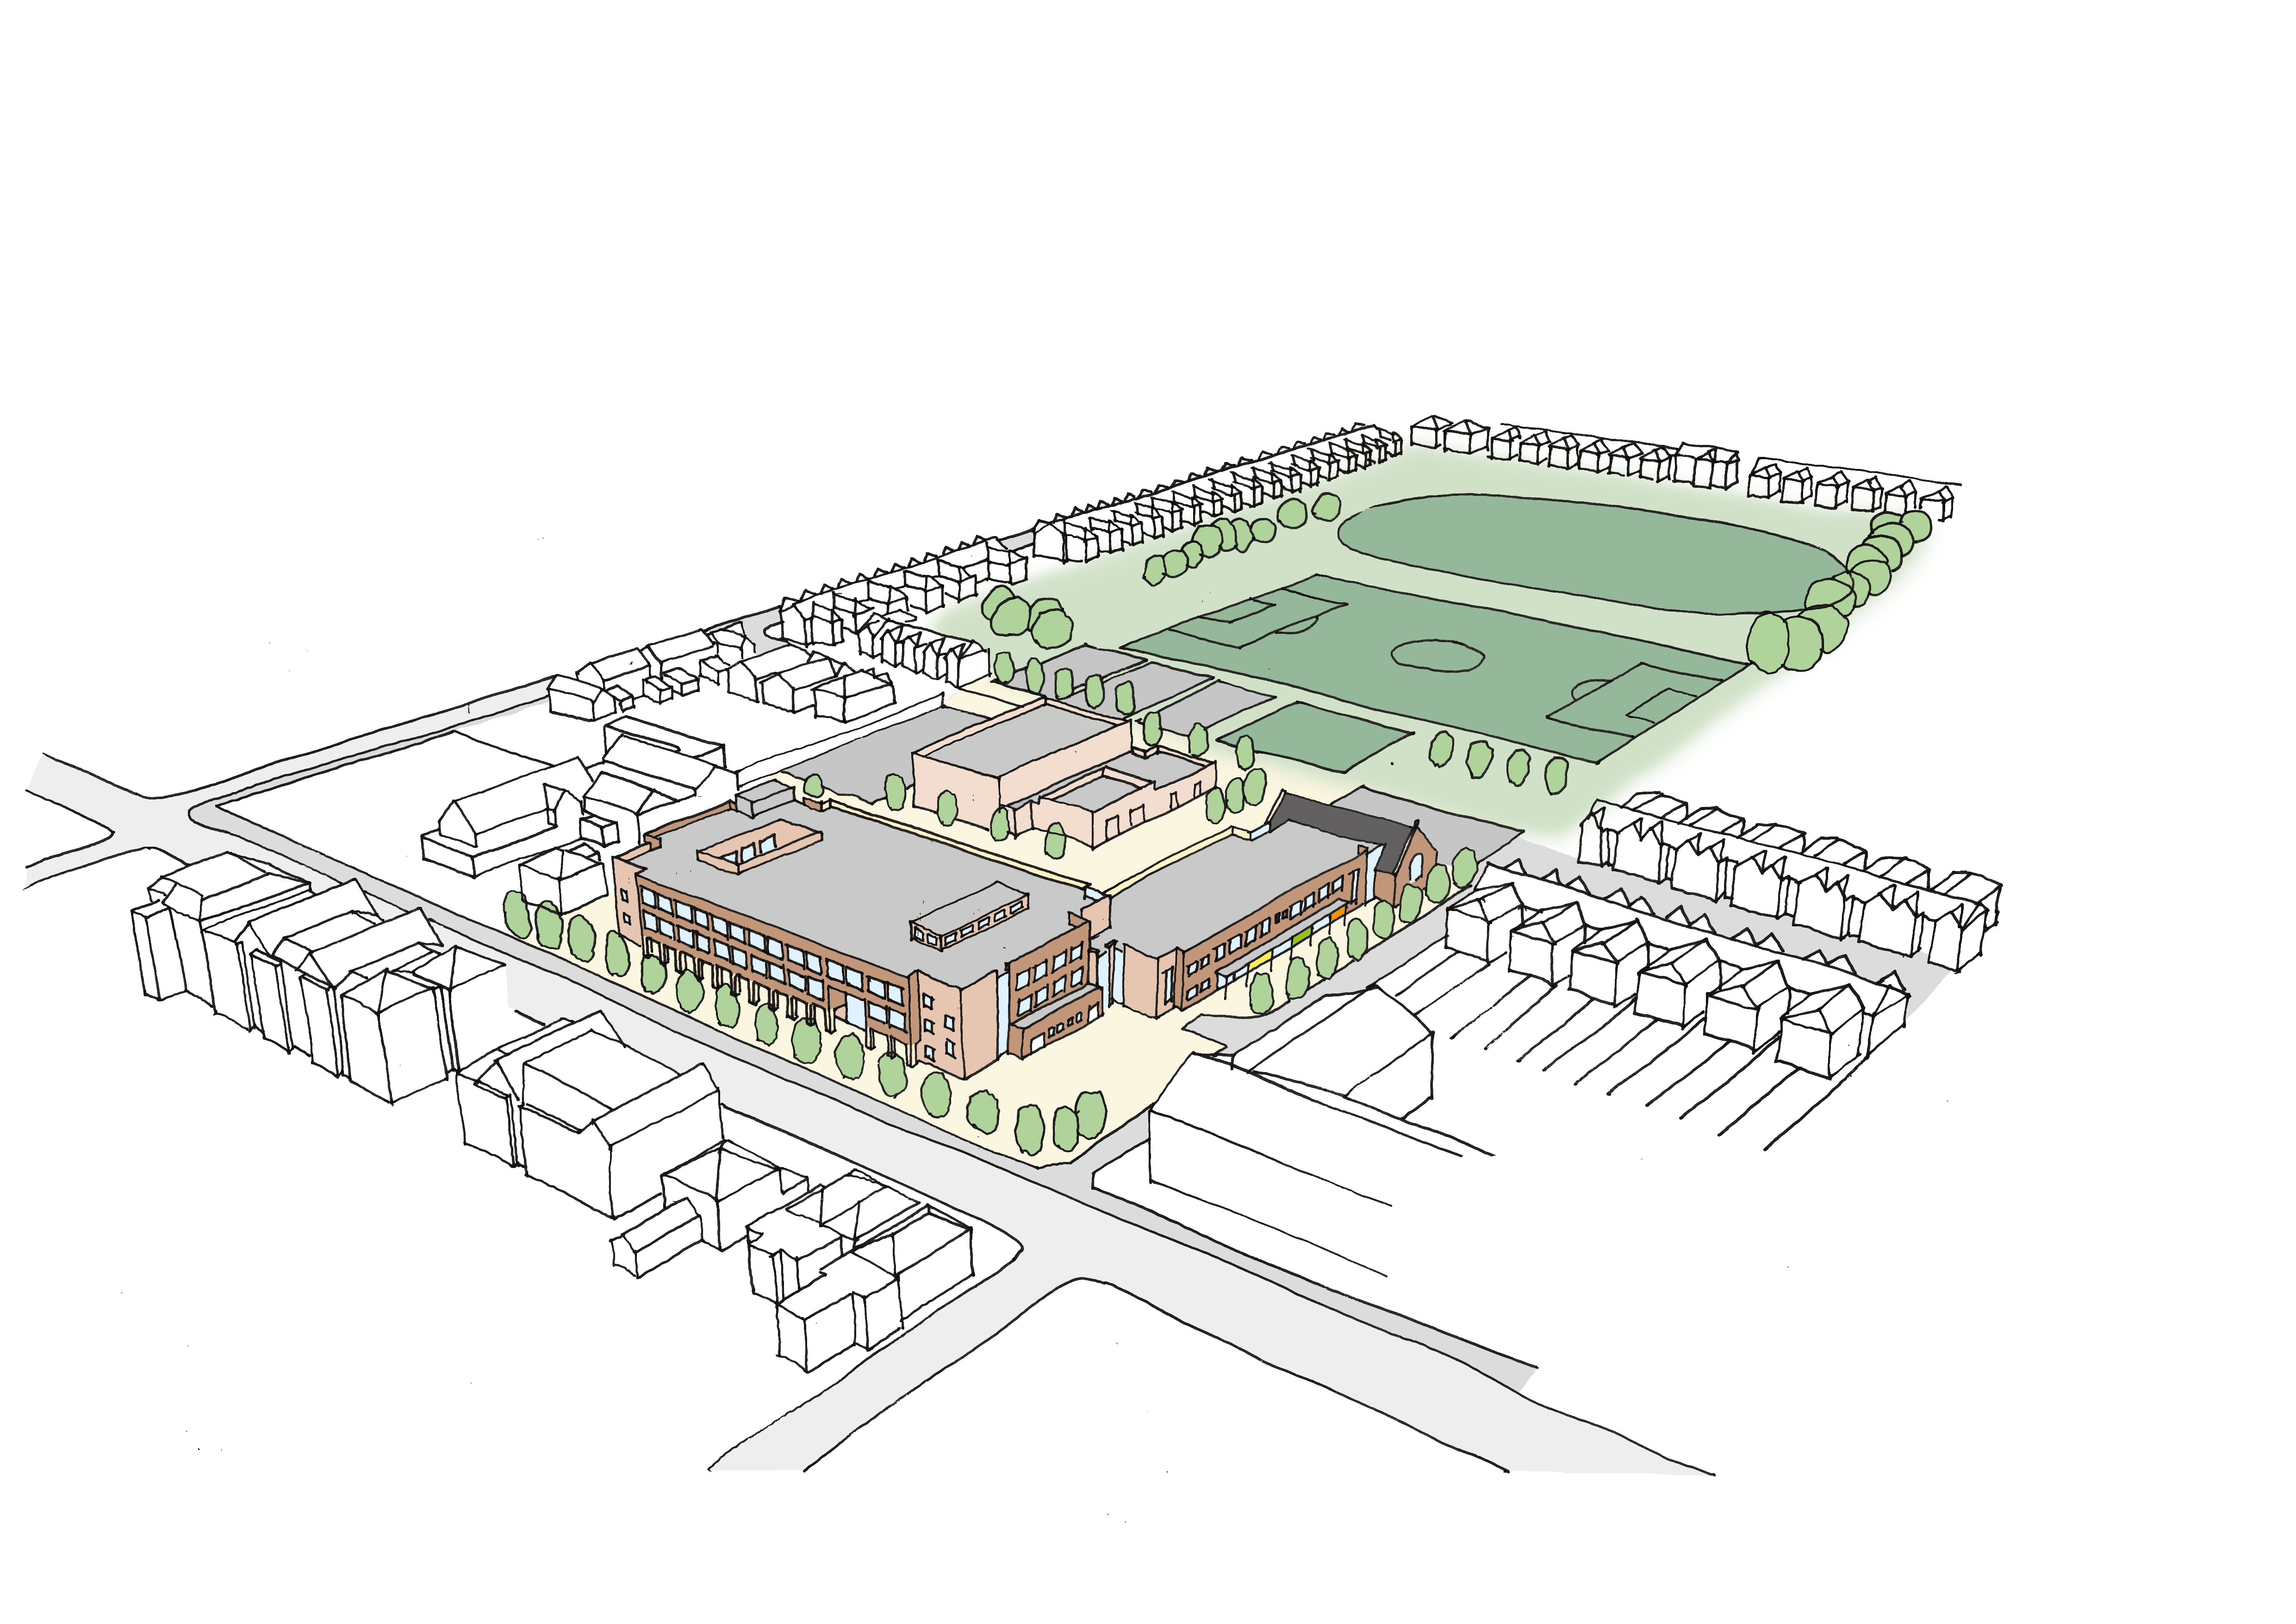 Sketch view of proposed new all-through school